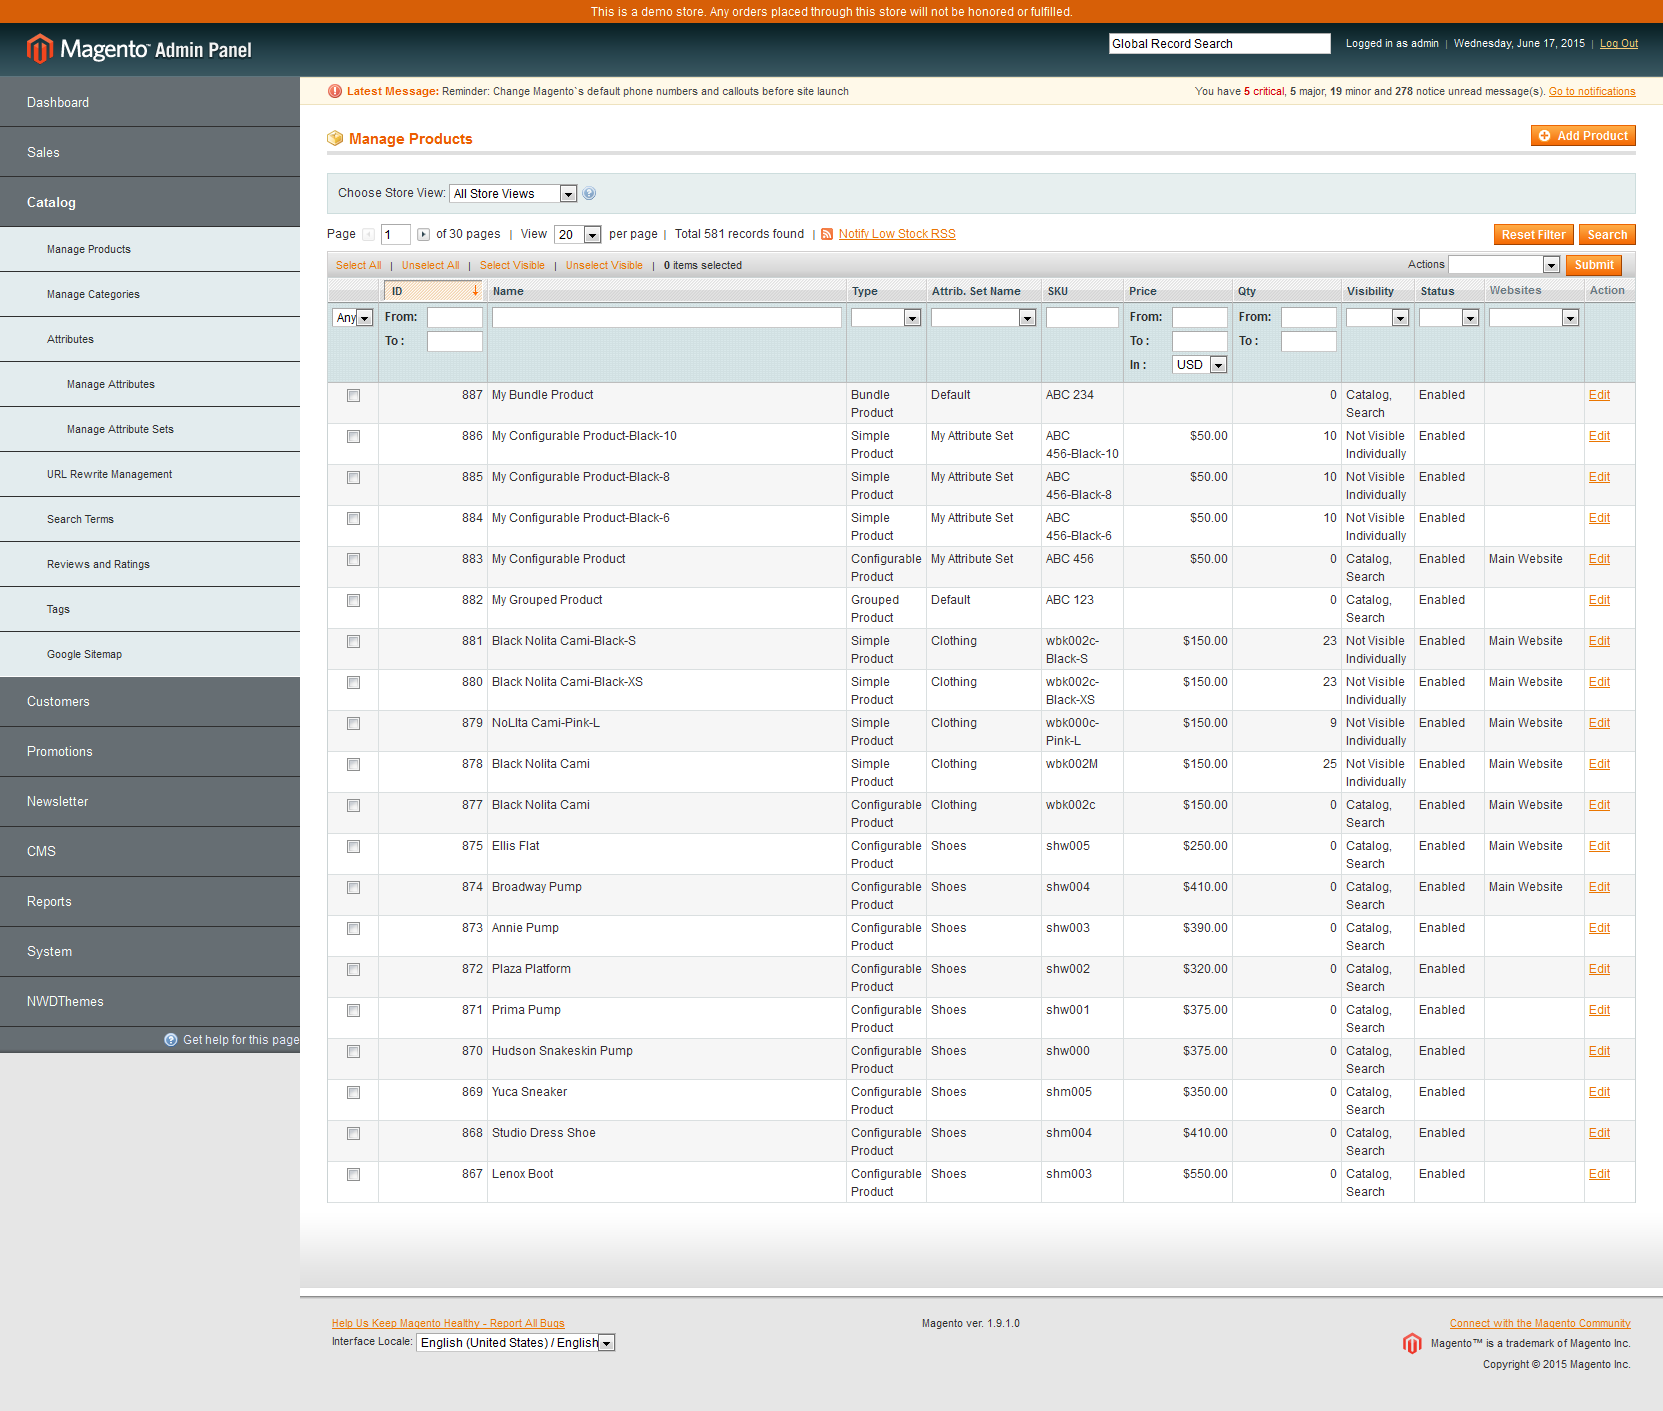 Magento Admin Vertical Navigation Menu